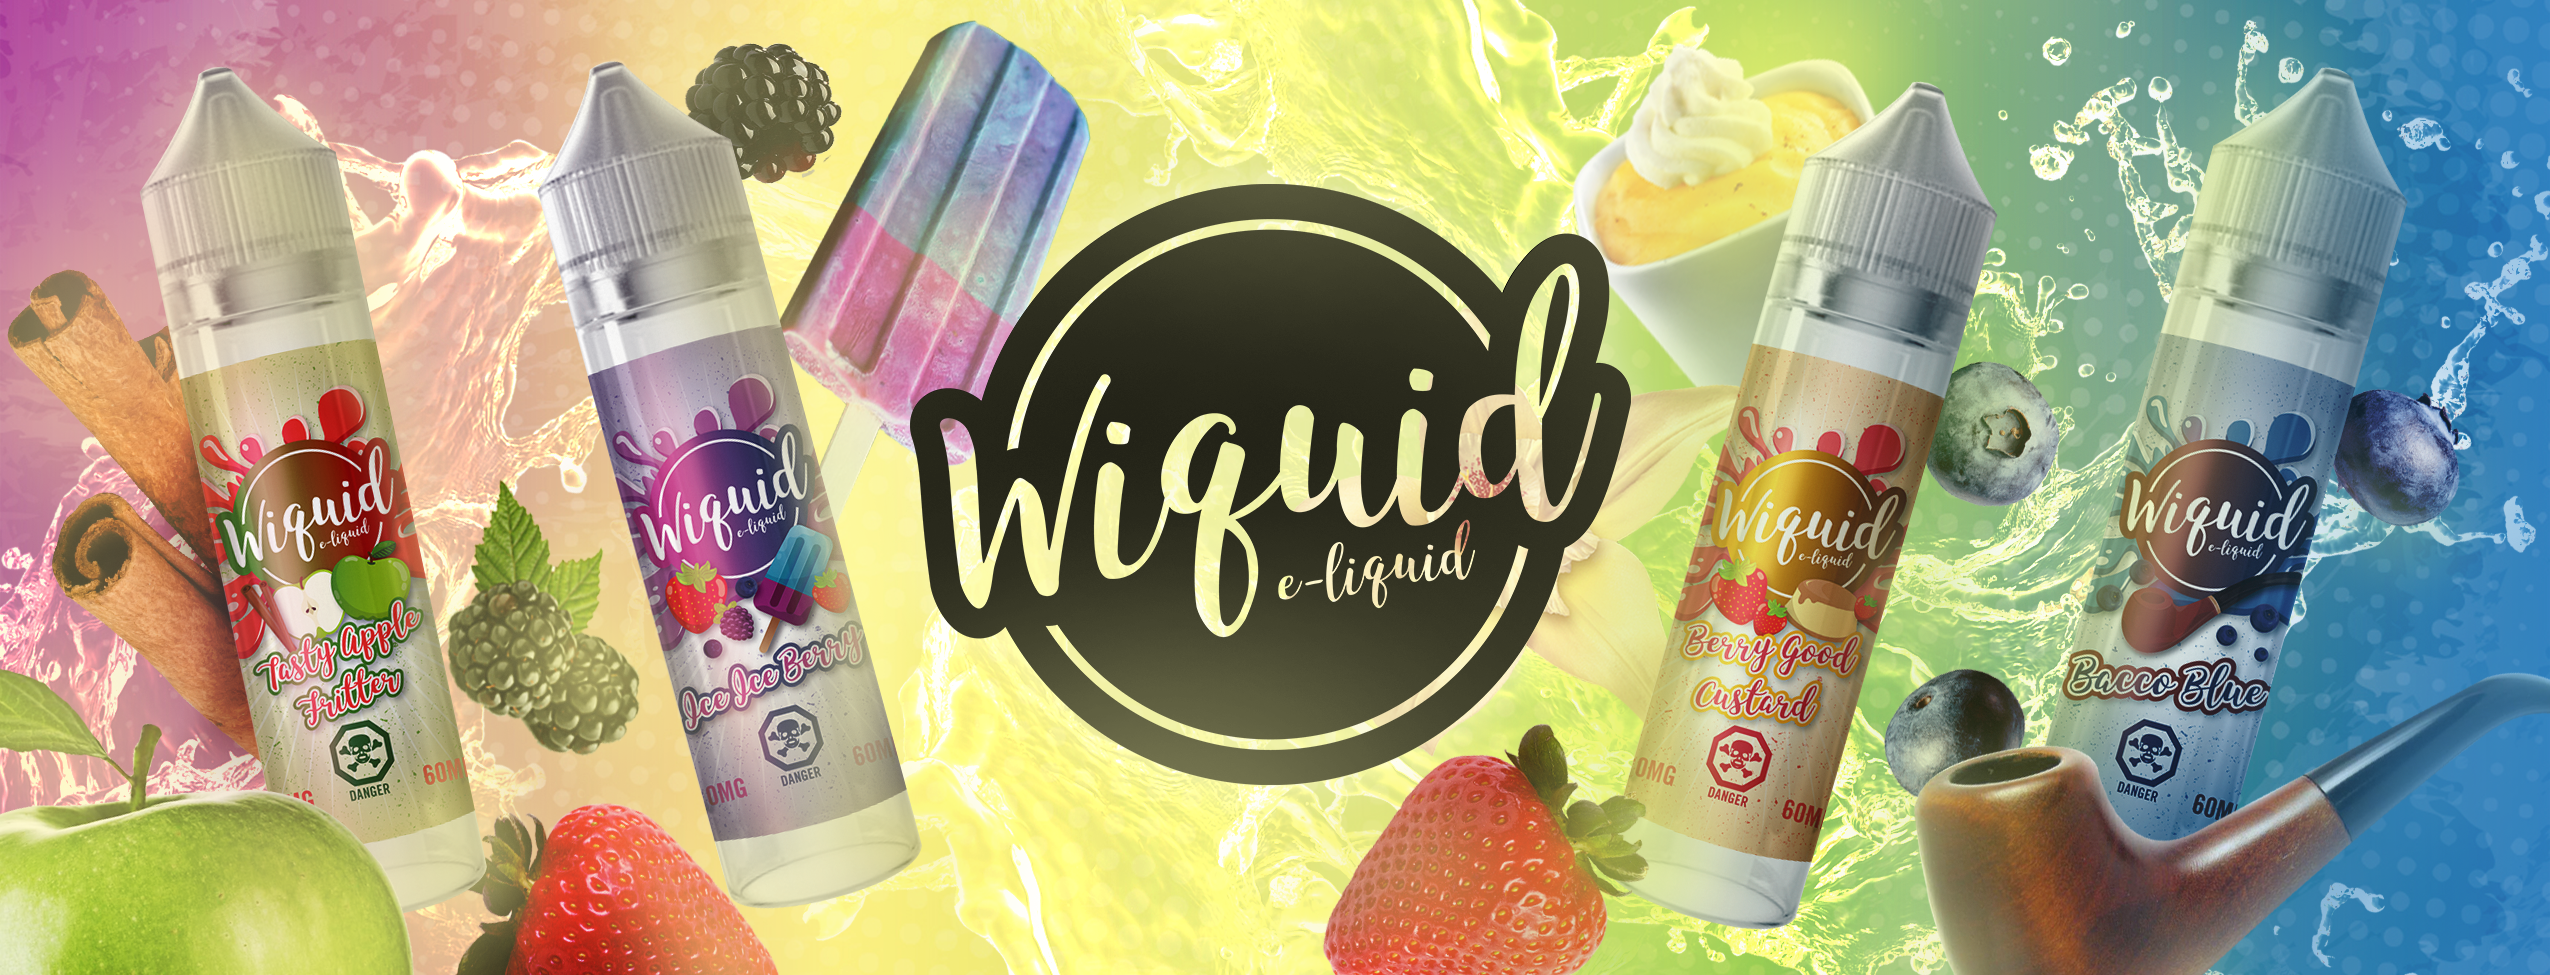 Wiquid Facebook Cover